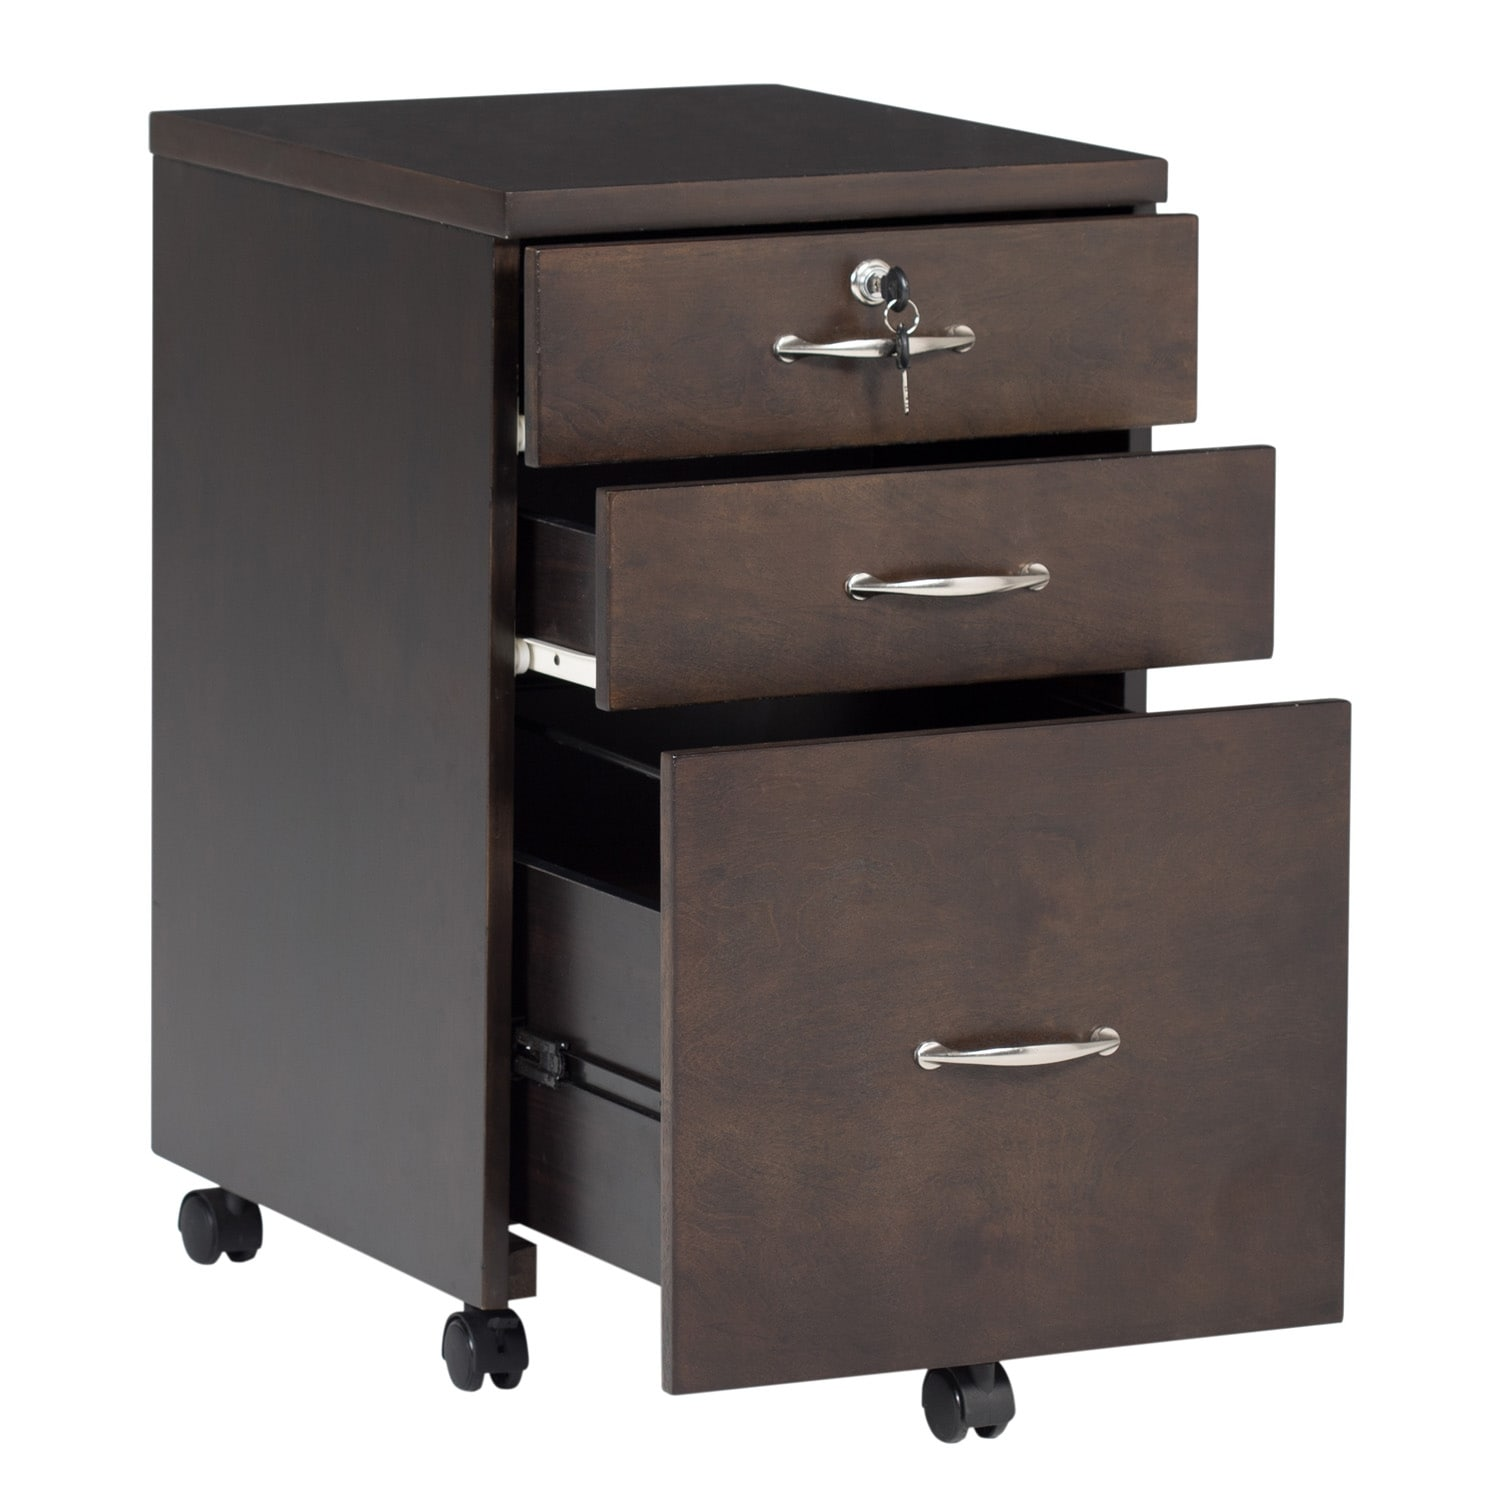 Offex Newel Mobile 3 Drawer Wood Filing Cabinet With Lock   Java